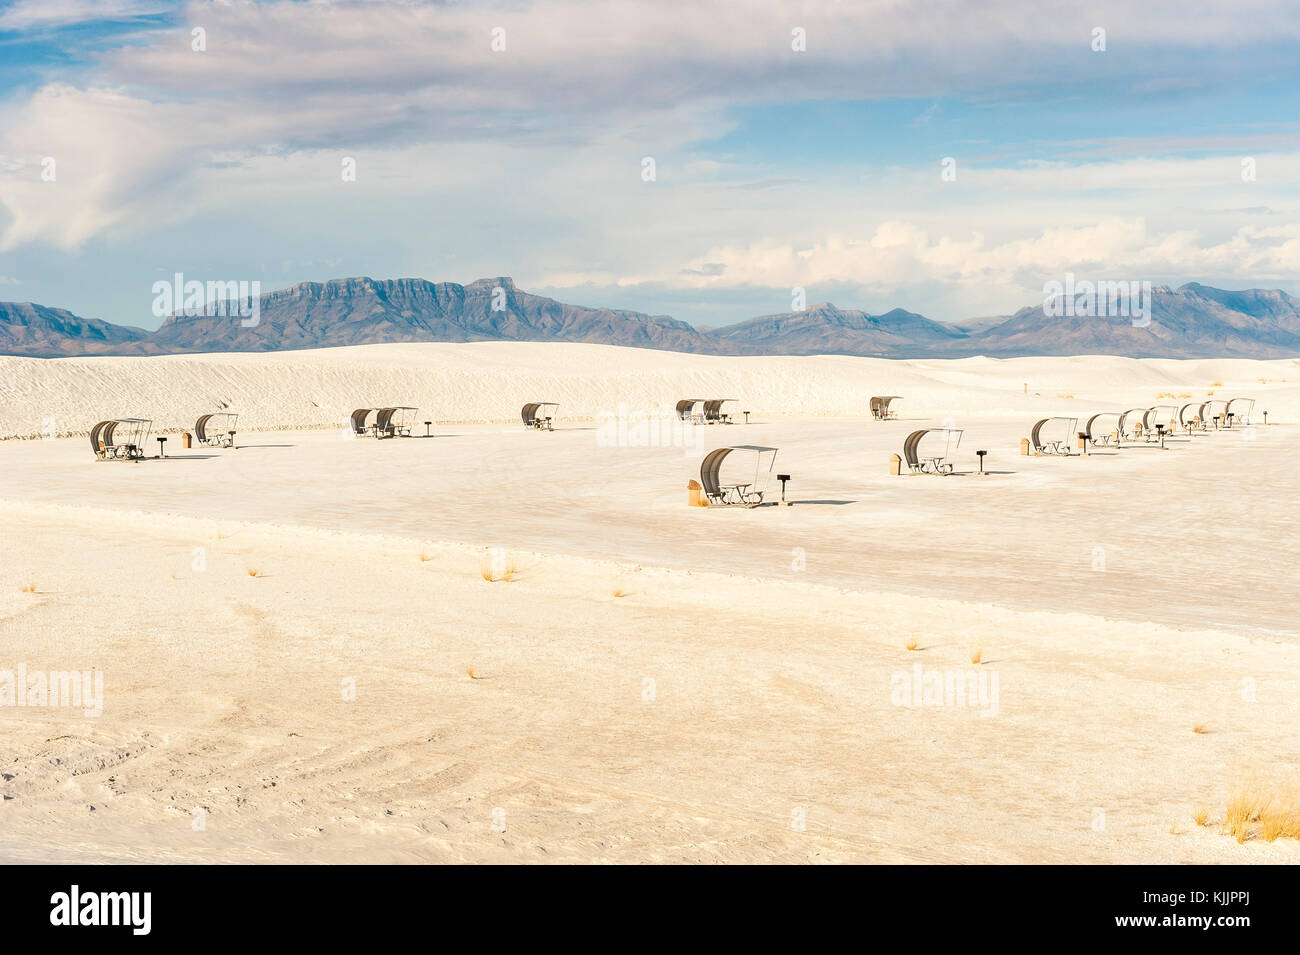 White Sands National Monument, view of empty parking space with picnic kiosks, mountain range in background, Alamogordo, - Stock Image